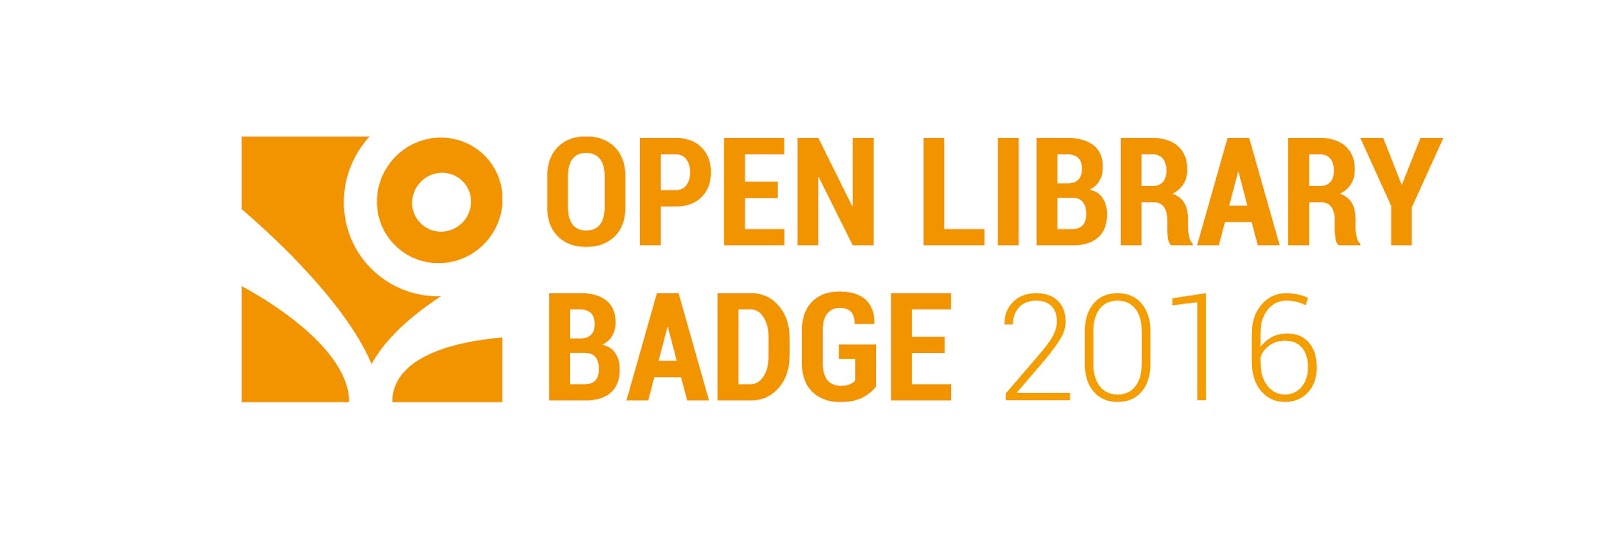 Open Library Badge 2016